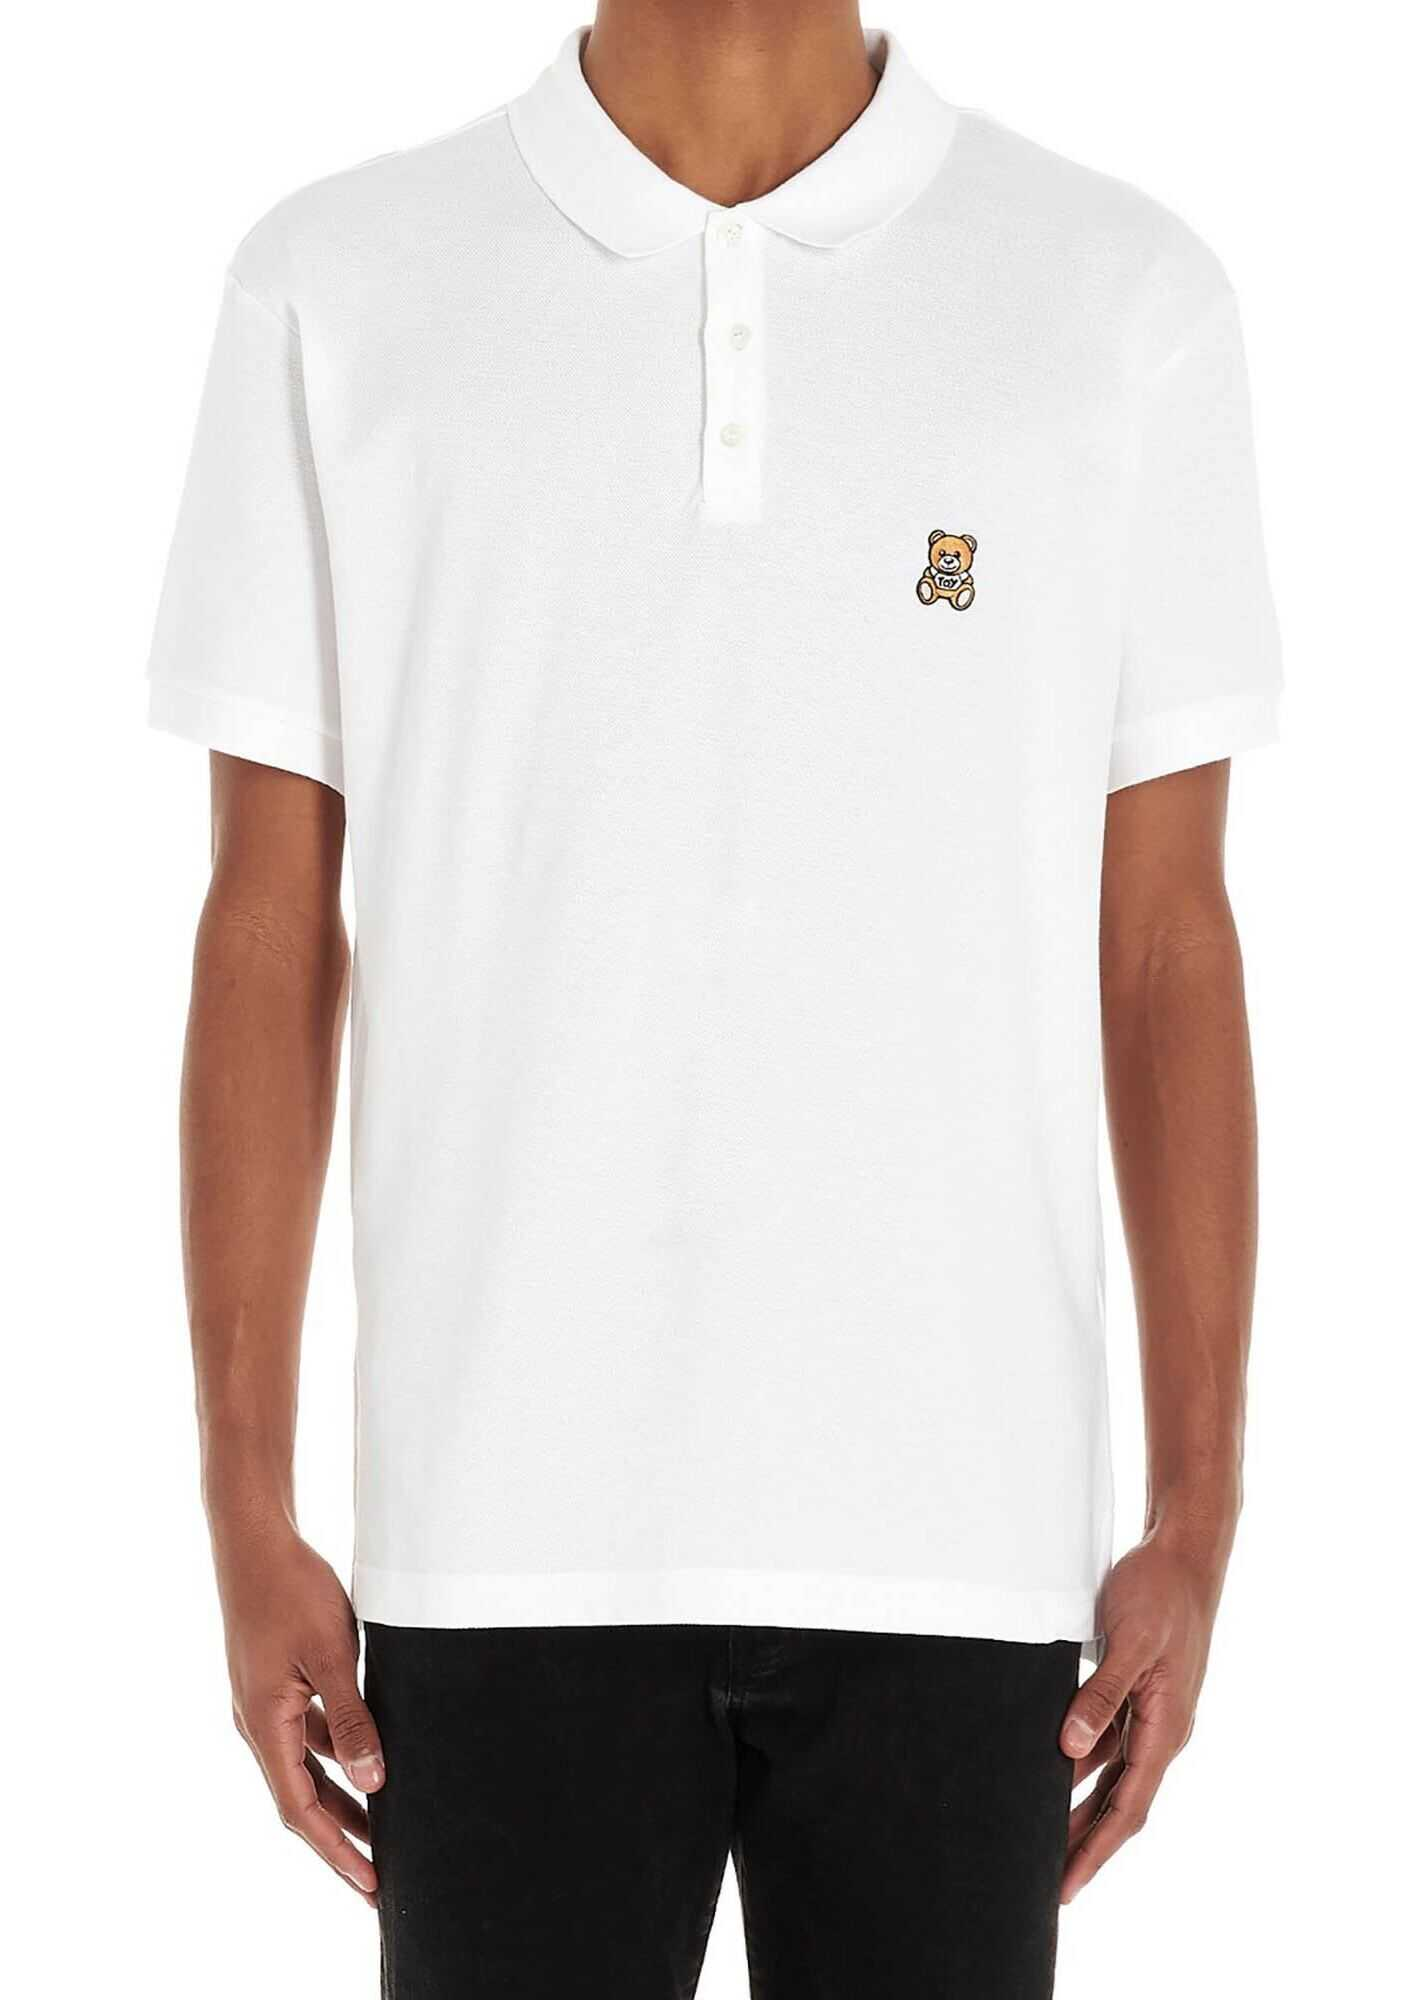 Moschino Teddy Bear Patch Polo Shirt In White White imagine